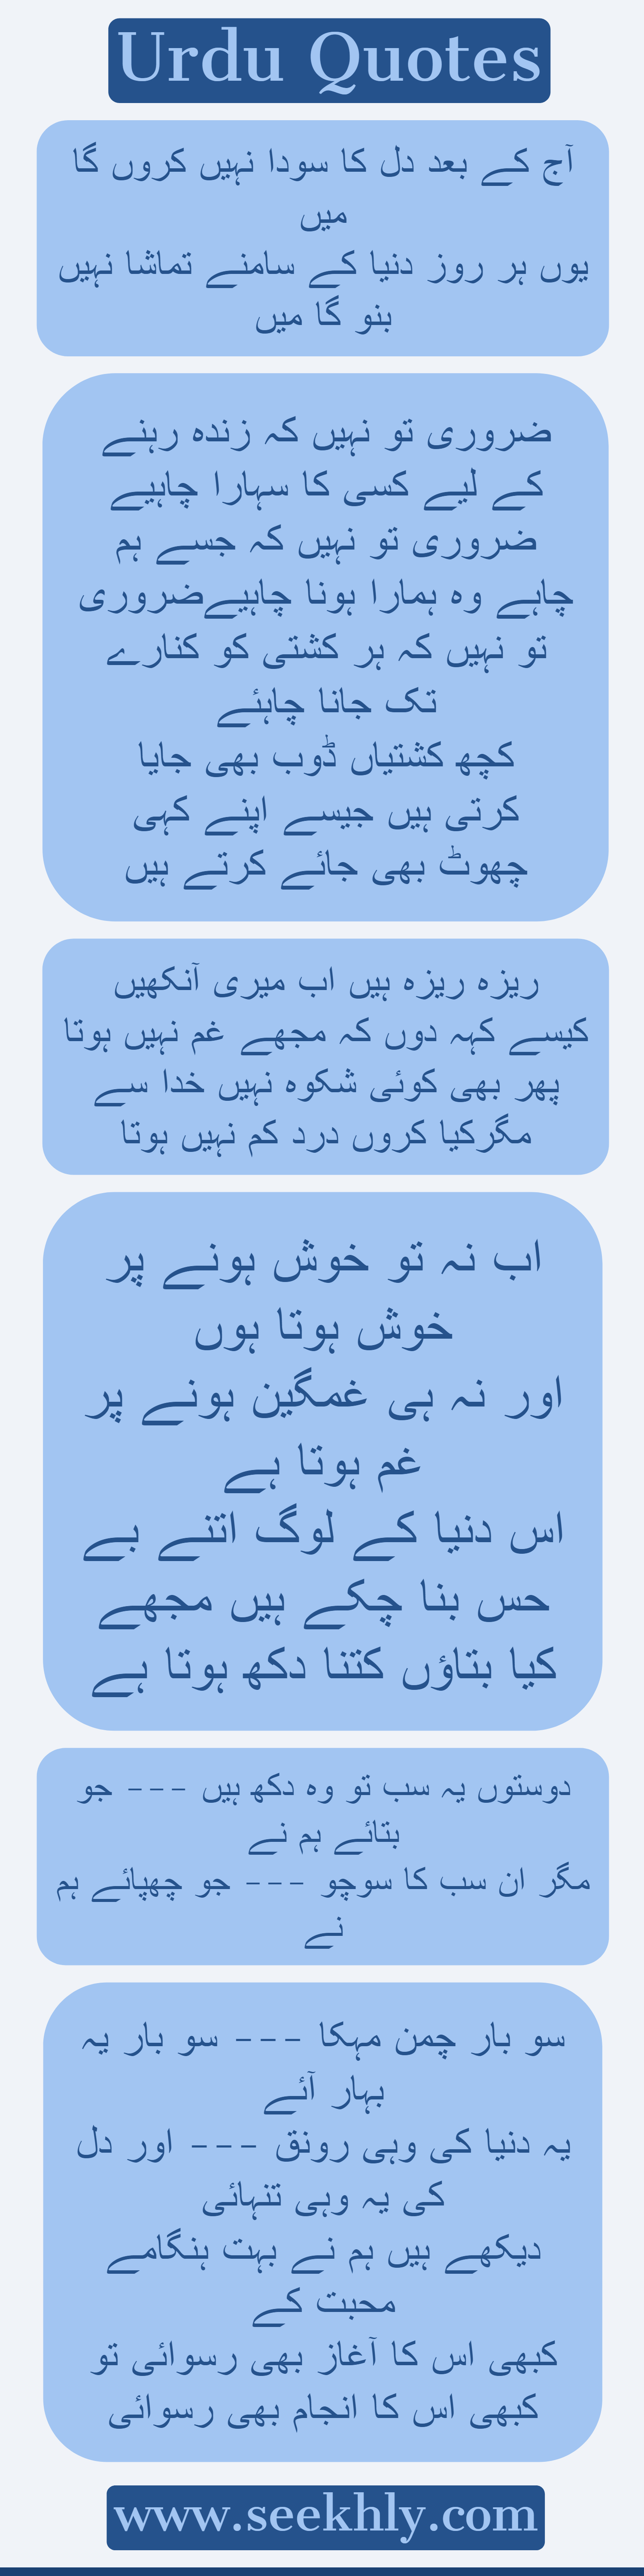 most romantic love poetry in urdu,quotes on life in urdu with images,heart touching quotes in urdu with images,